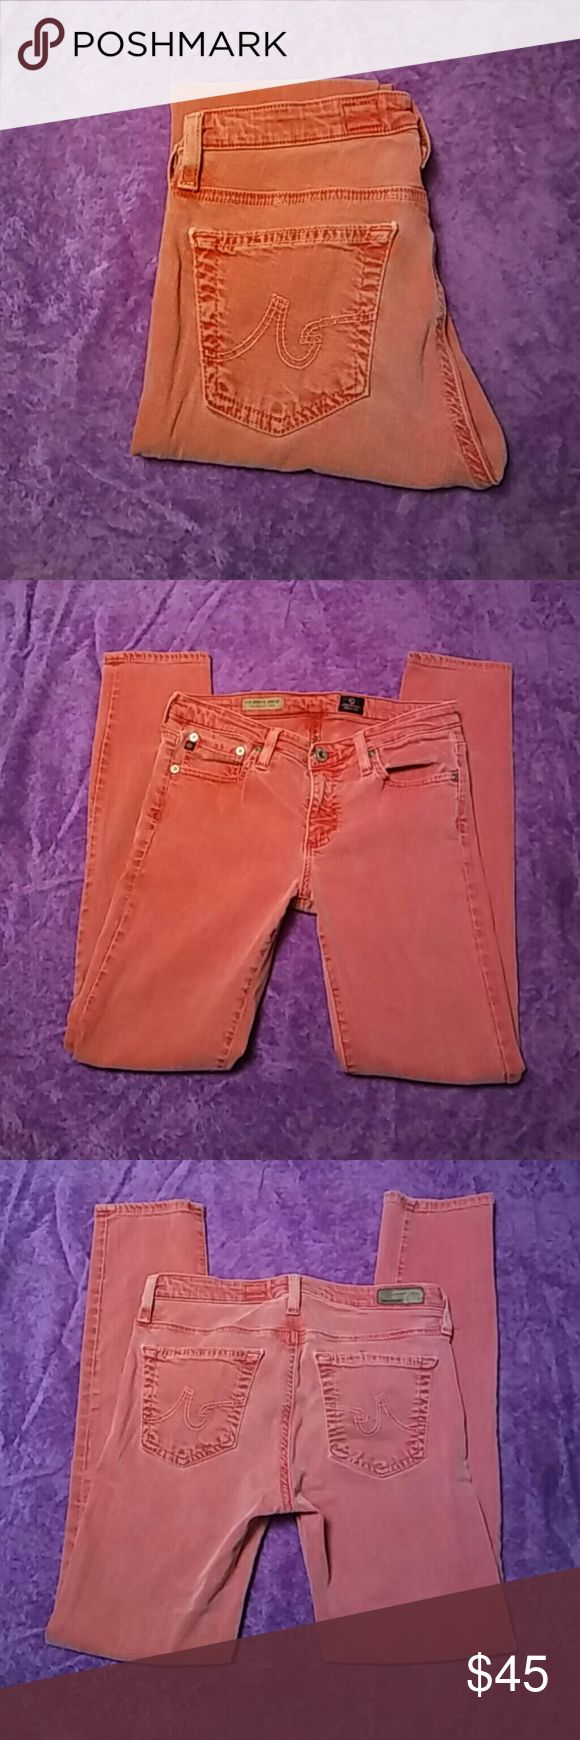 Red-Orange Adriano Goldschmied Jeans Stevie Ankle Adriano Goldschmied jeans in Red-Orange Hardly worn, soft and stretchy.  Tag says 26R Stevie Ankle is a short leg. Adriano Goldschmied Jeans Ankle & Cropped